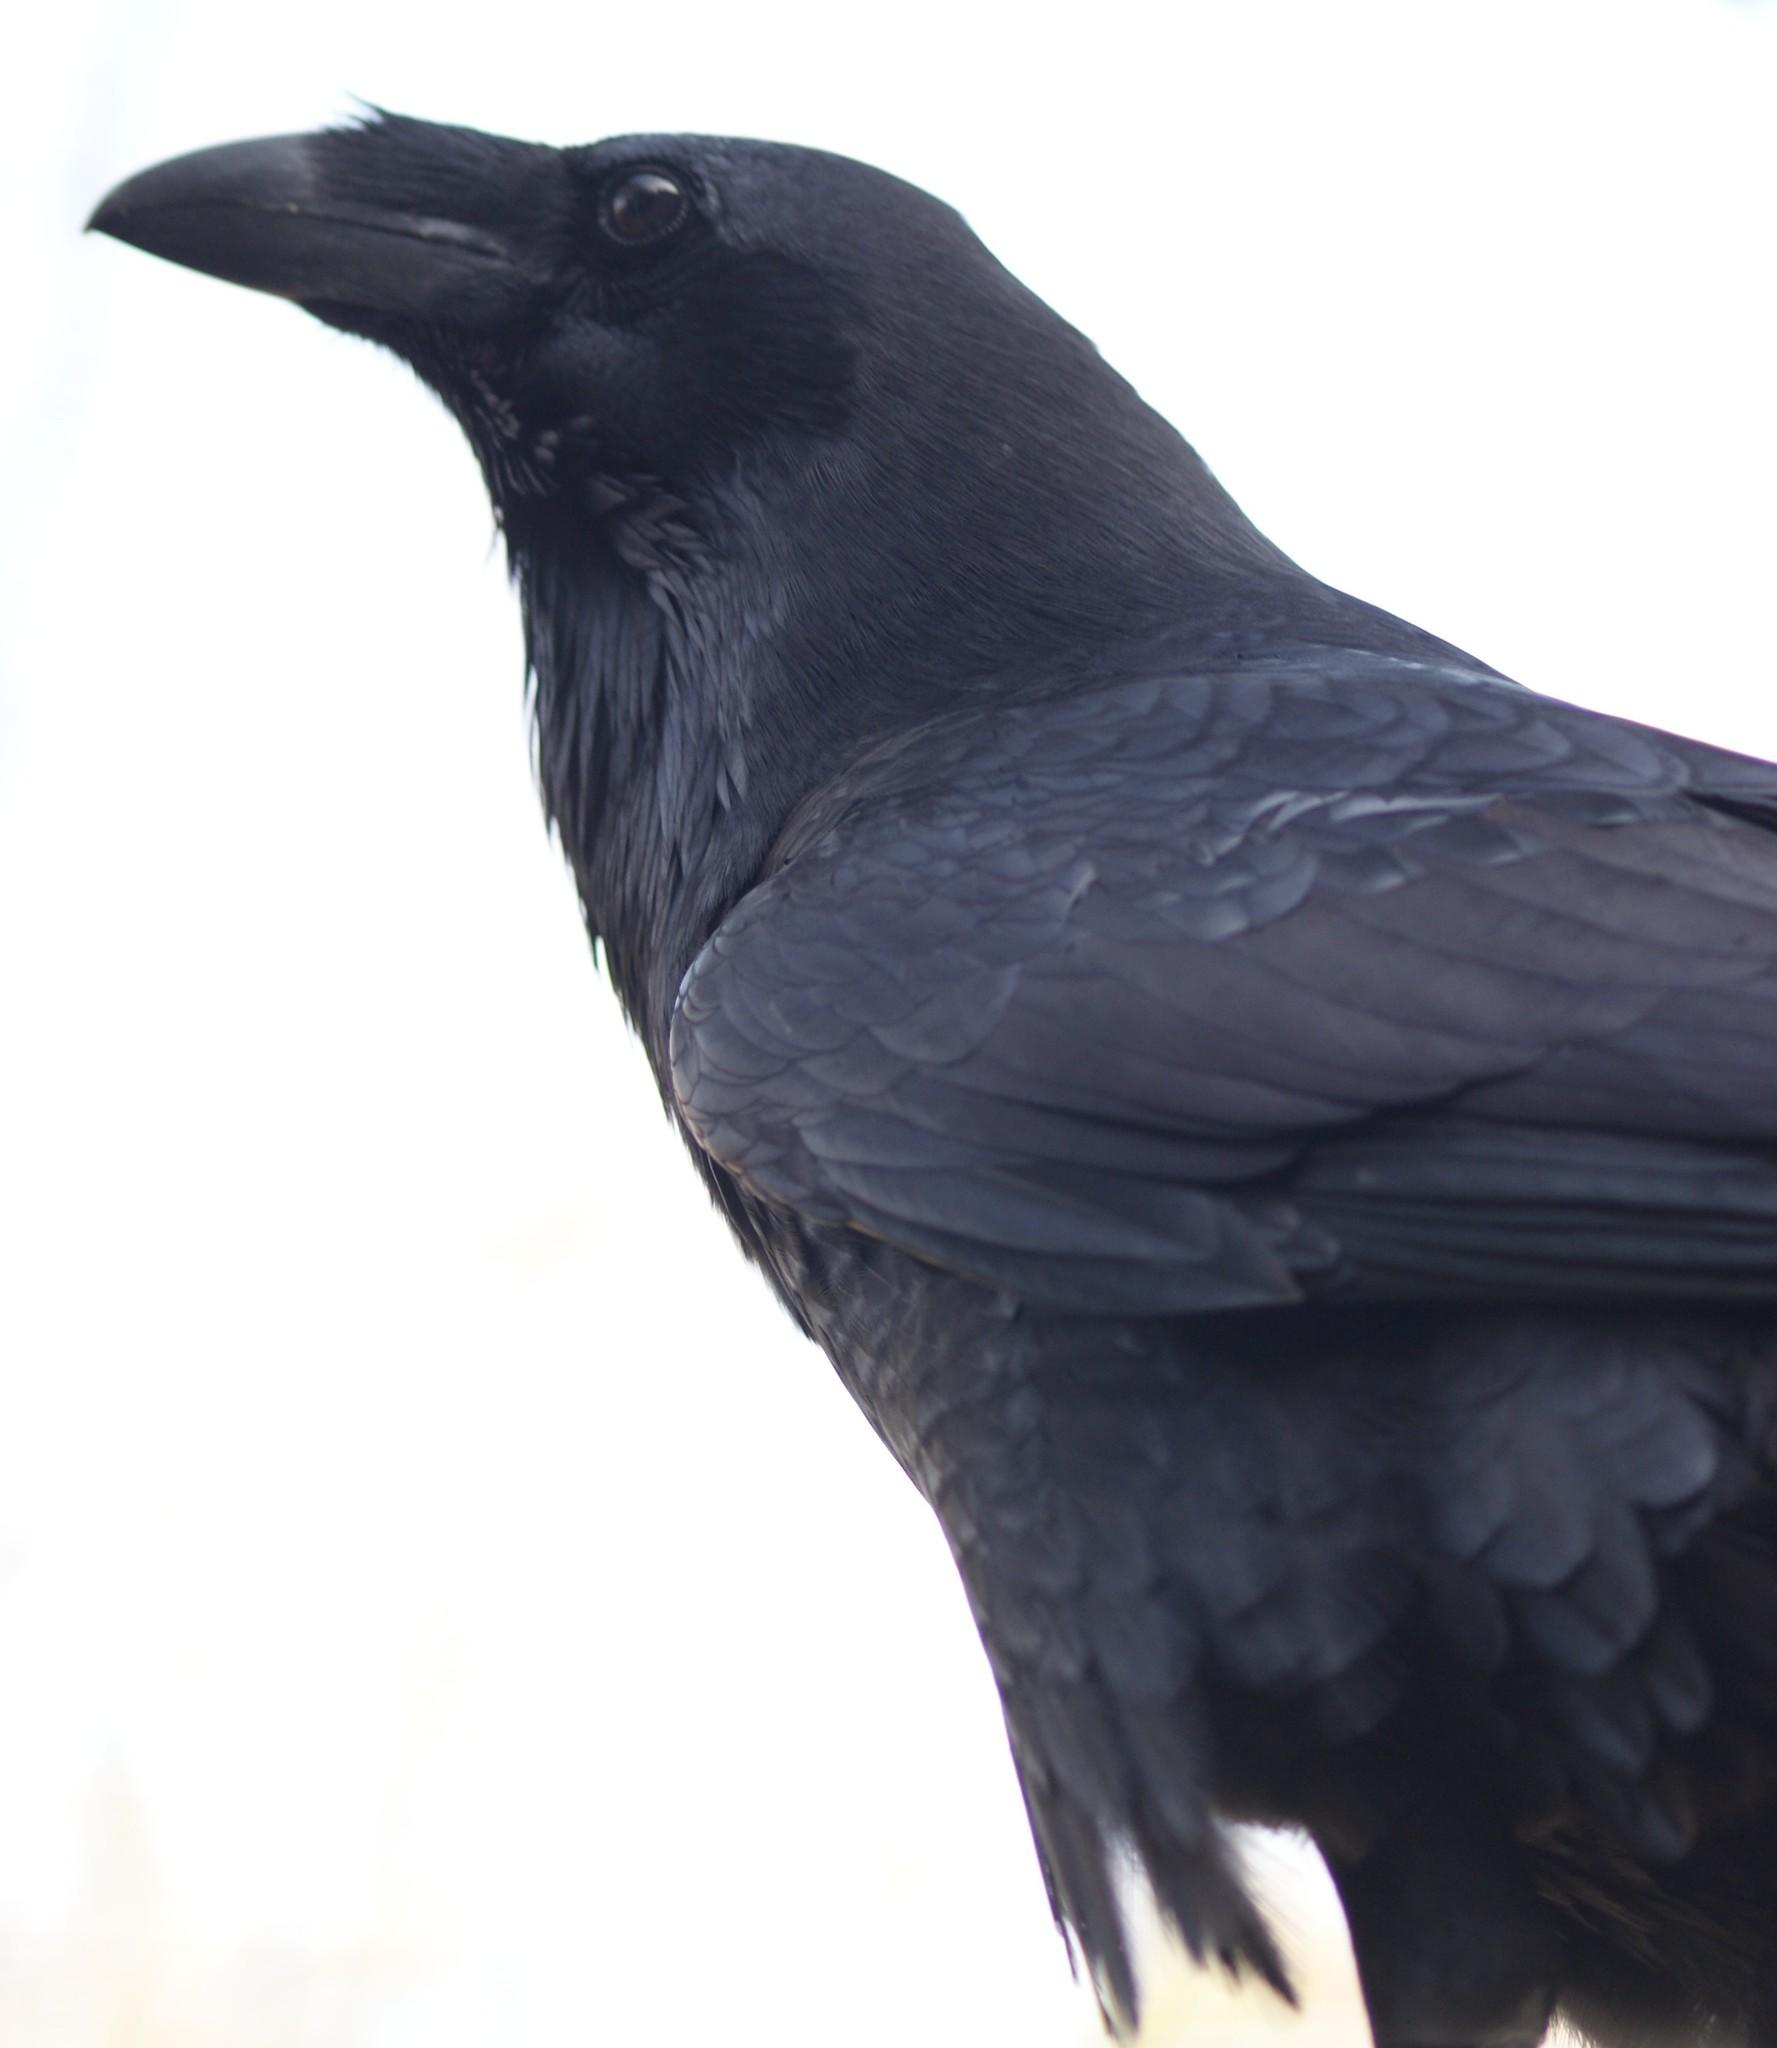 This raven is playing close attention to the calls of other birds being played back during the study.